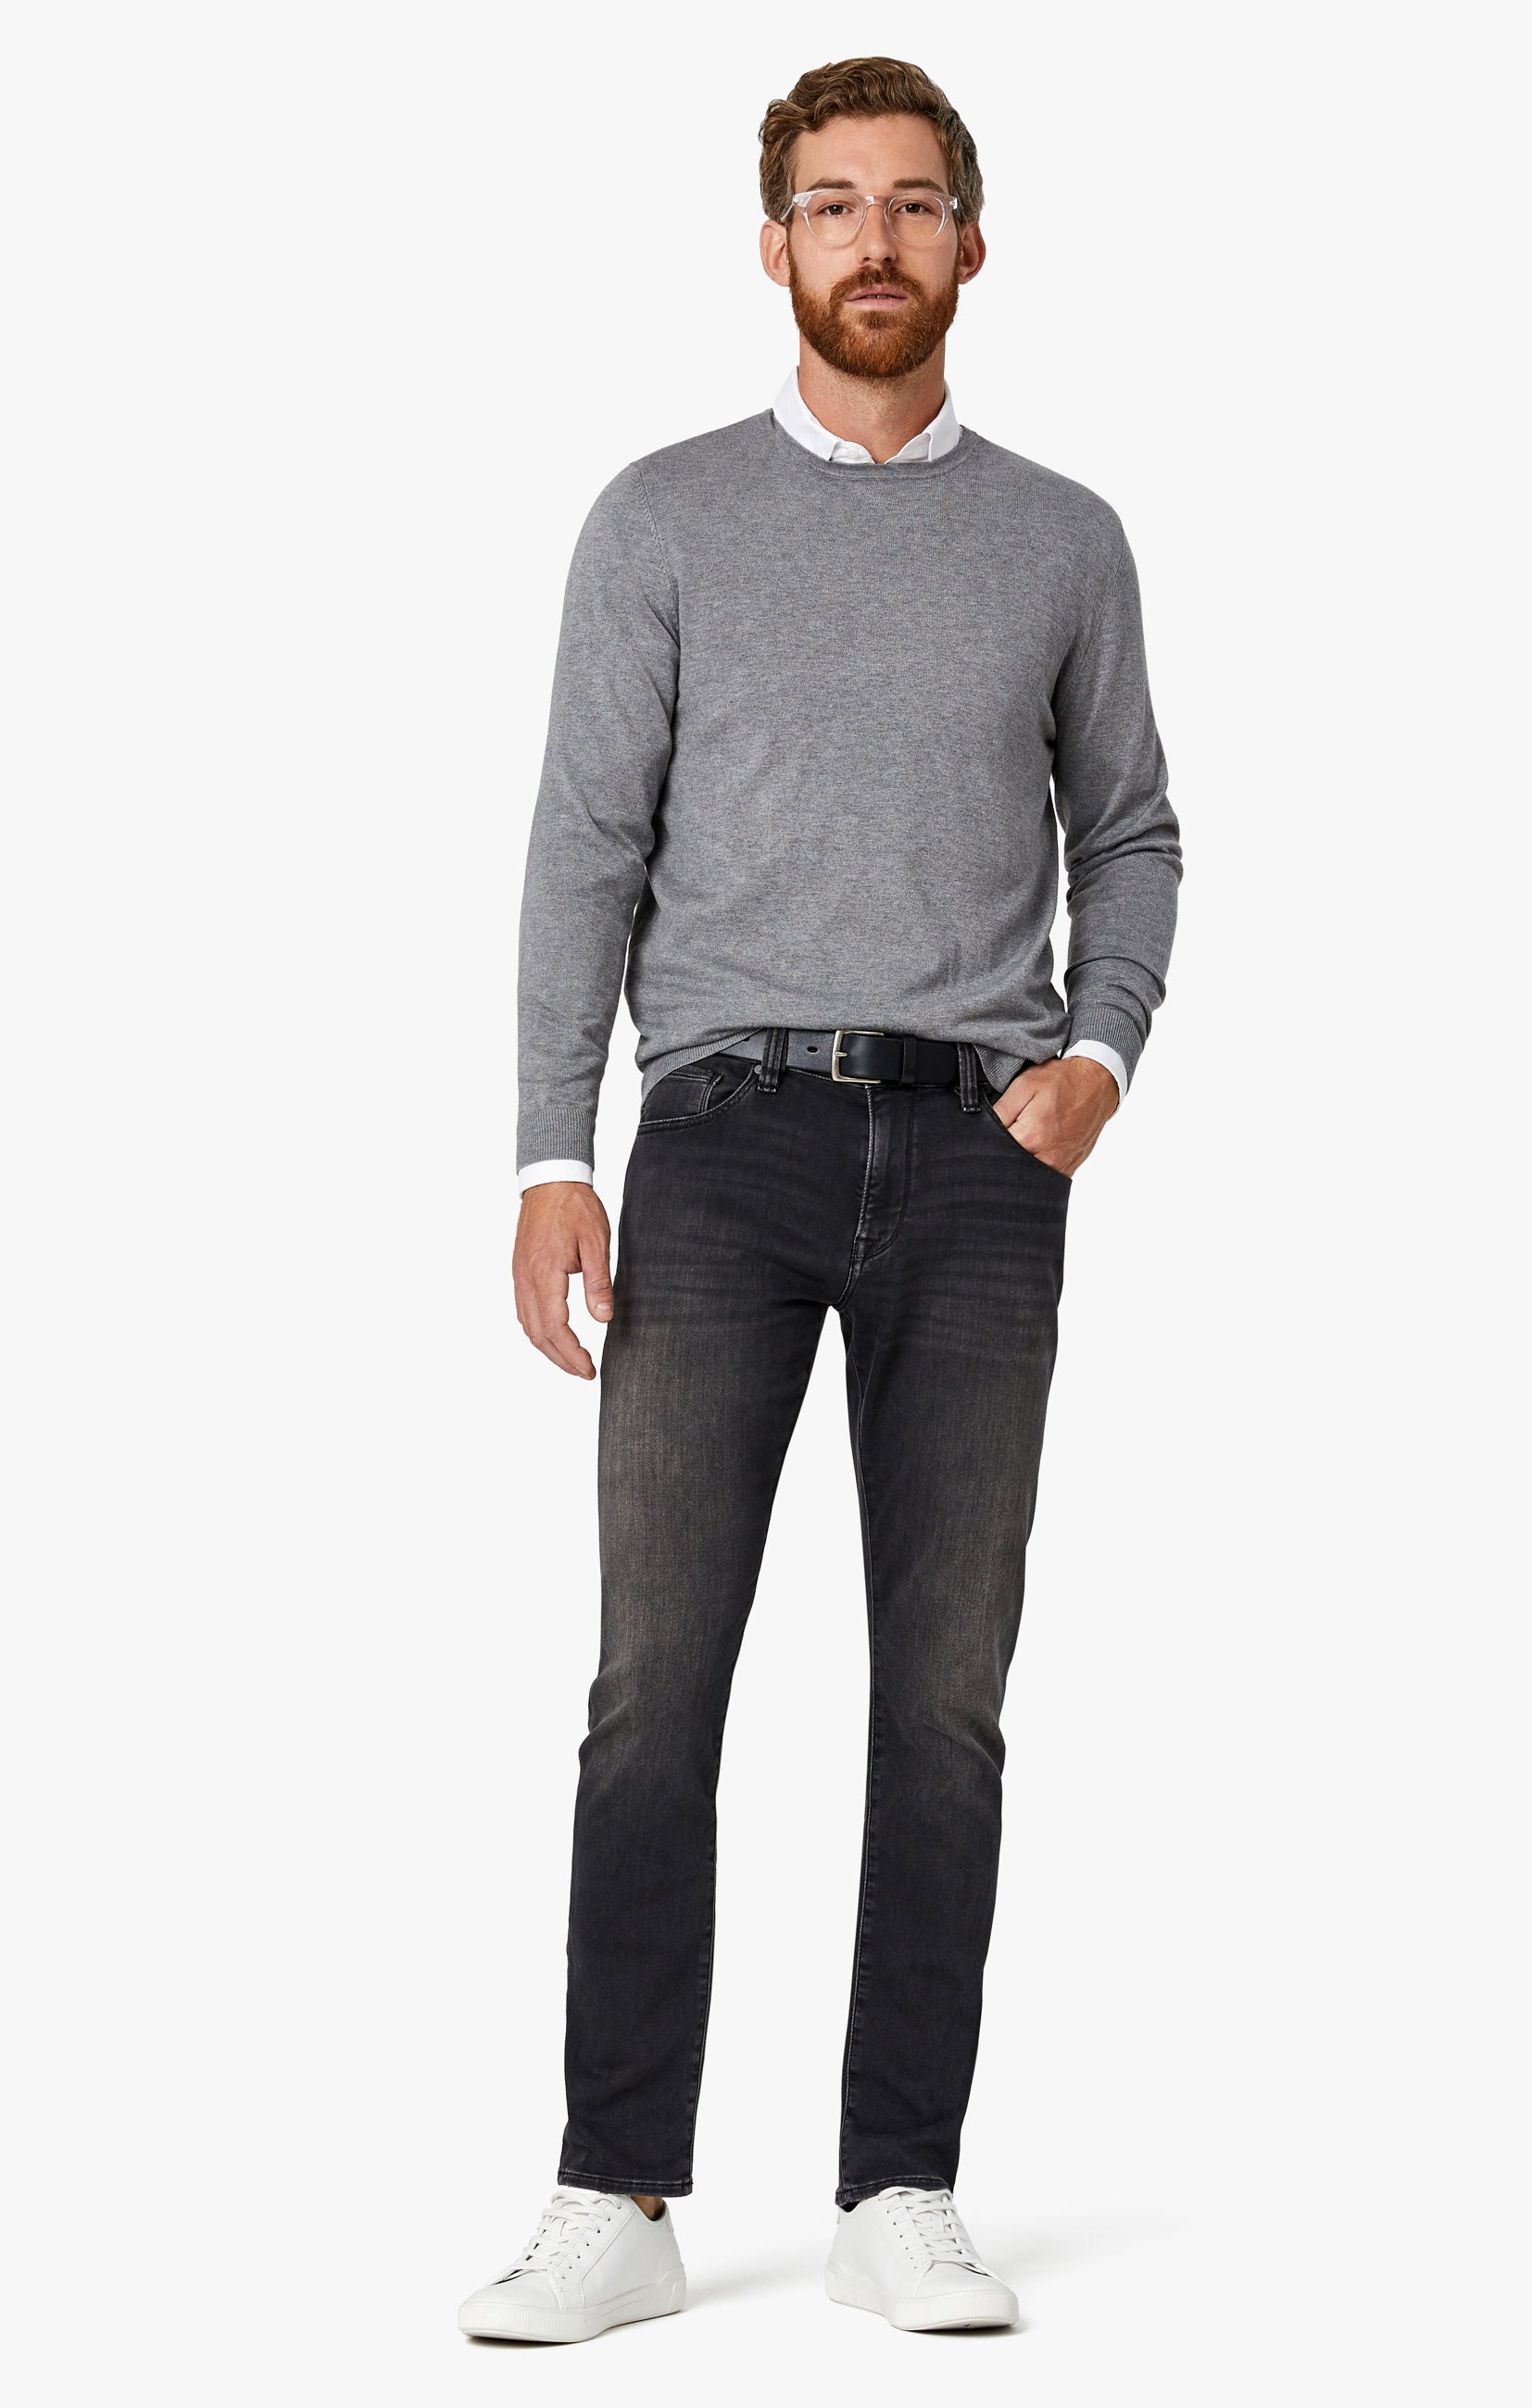 Courage Straight Leg Jeans in Mid Smoke Smart Casual Image 8